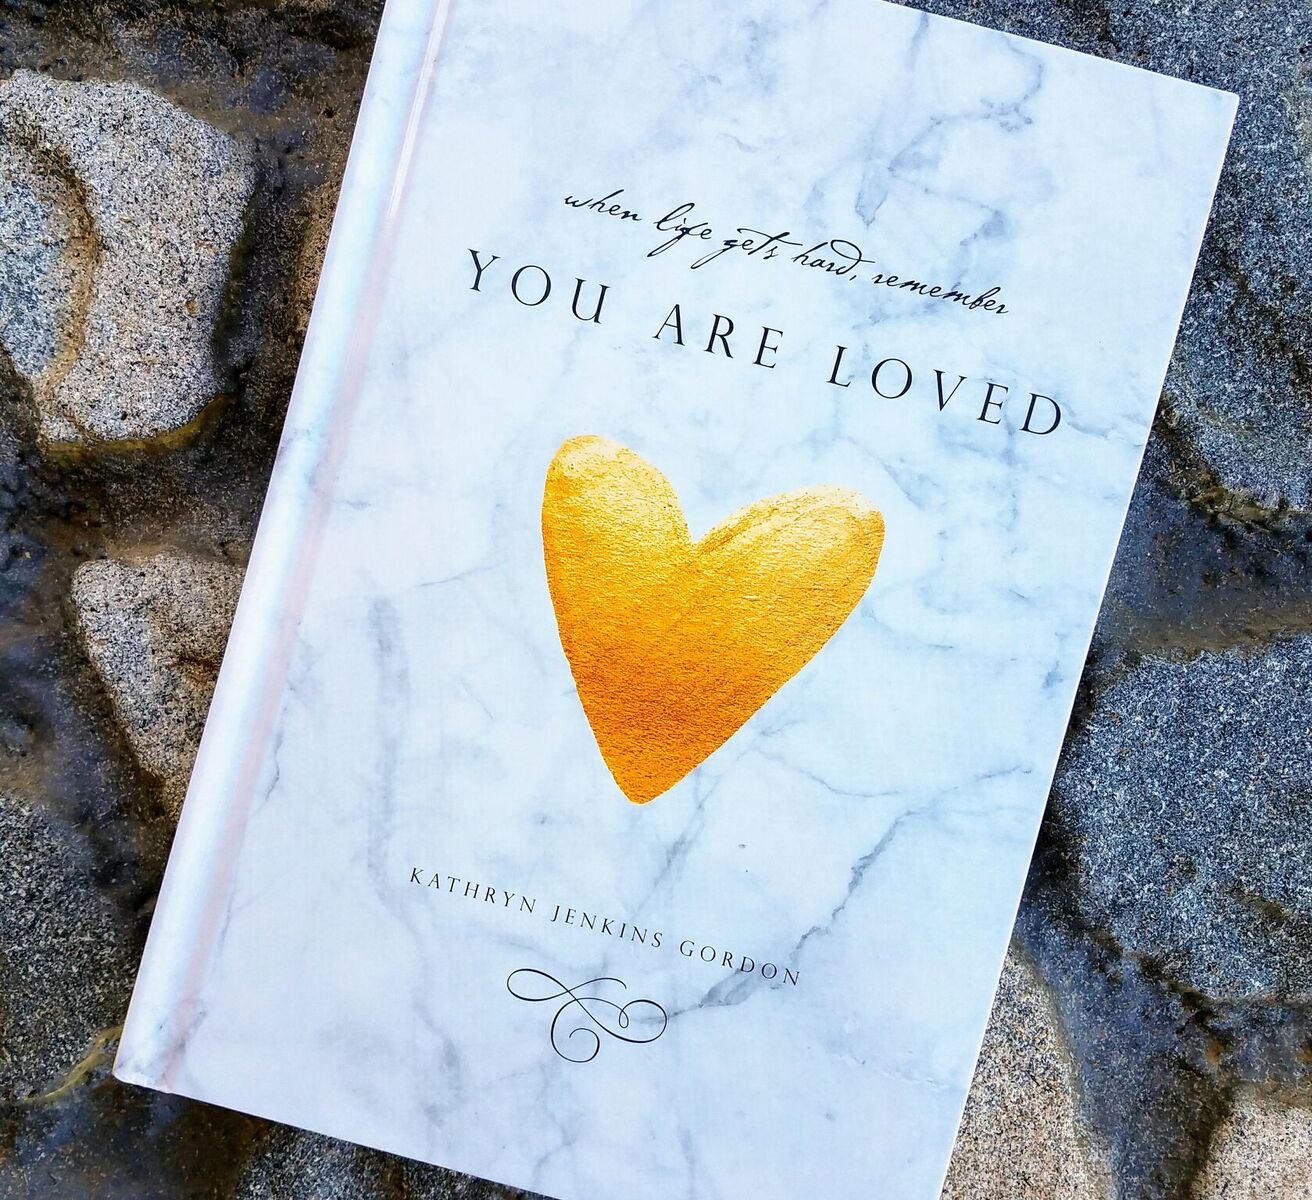 You-Are-Loved-Kathryn-Gordon